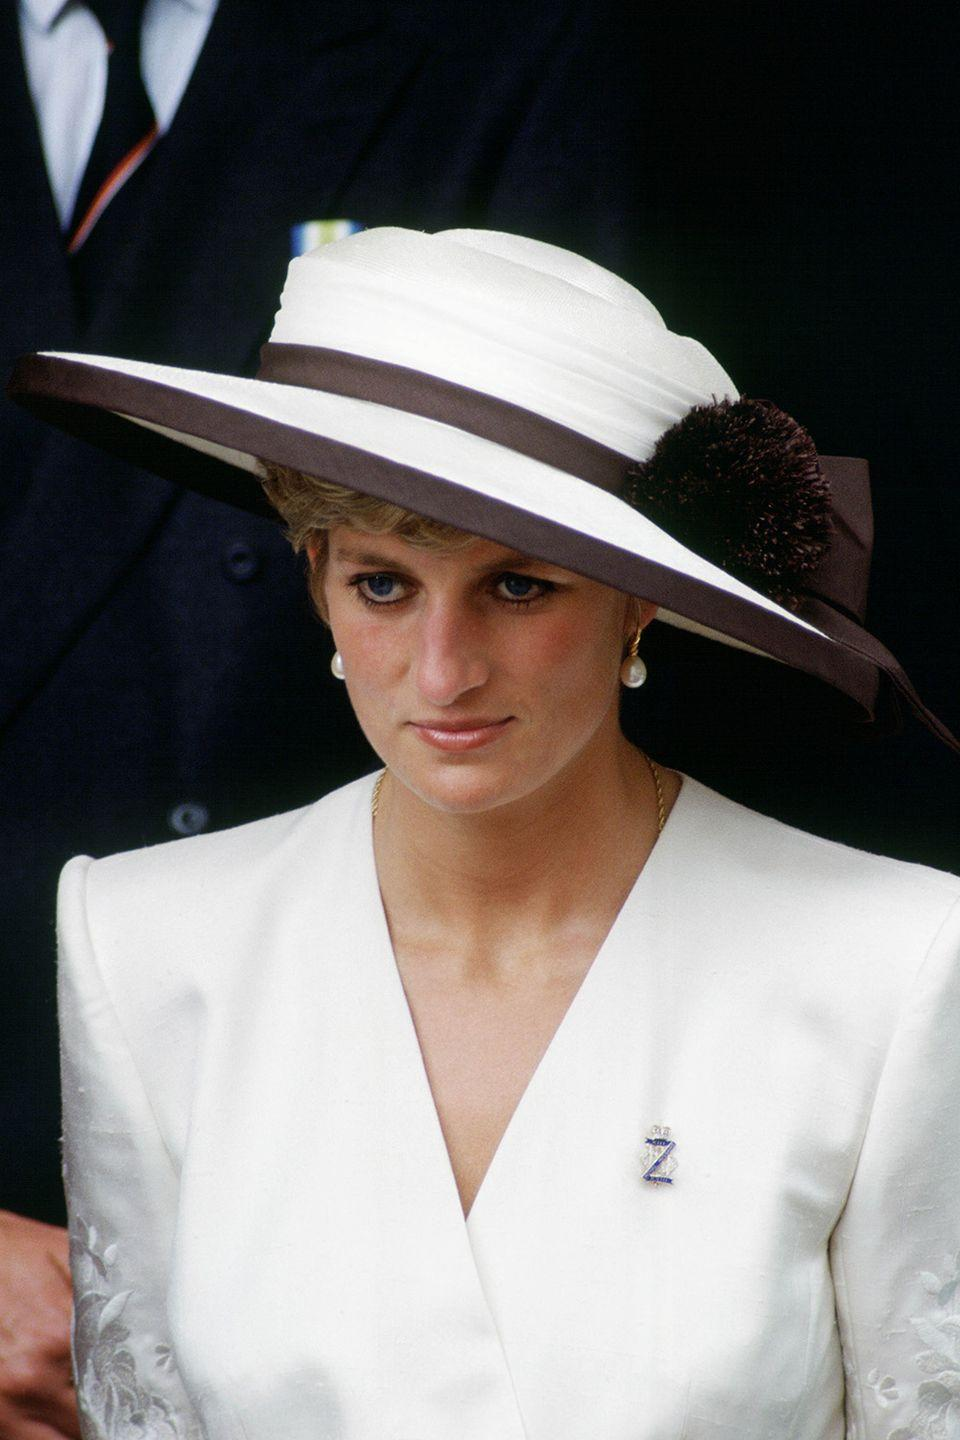 <p>Wearing a brown-and-white hat designed by Marina Killery at an event in London. </p>